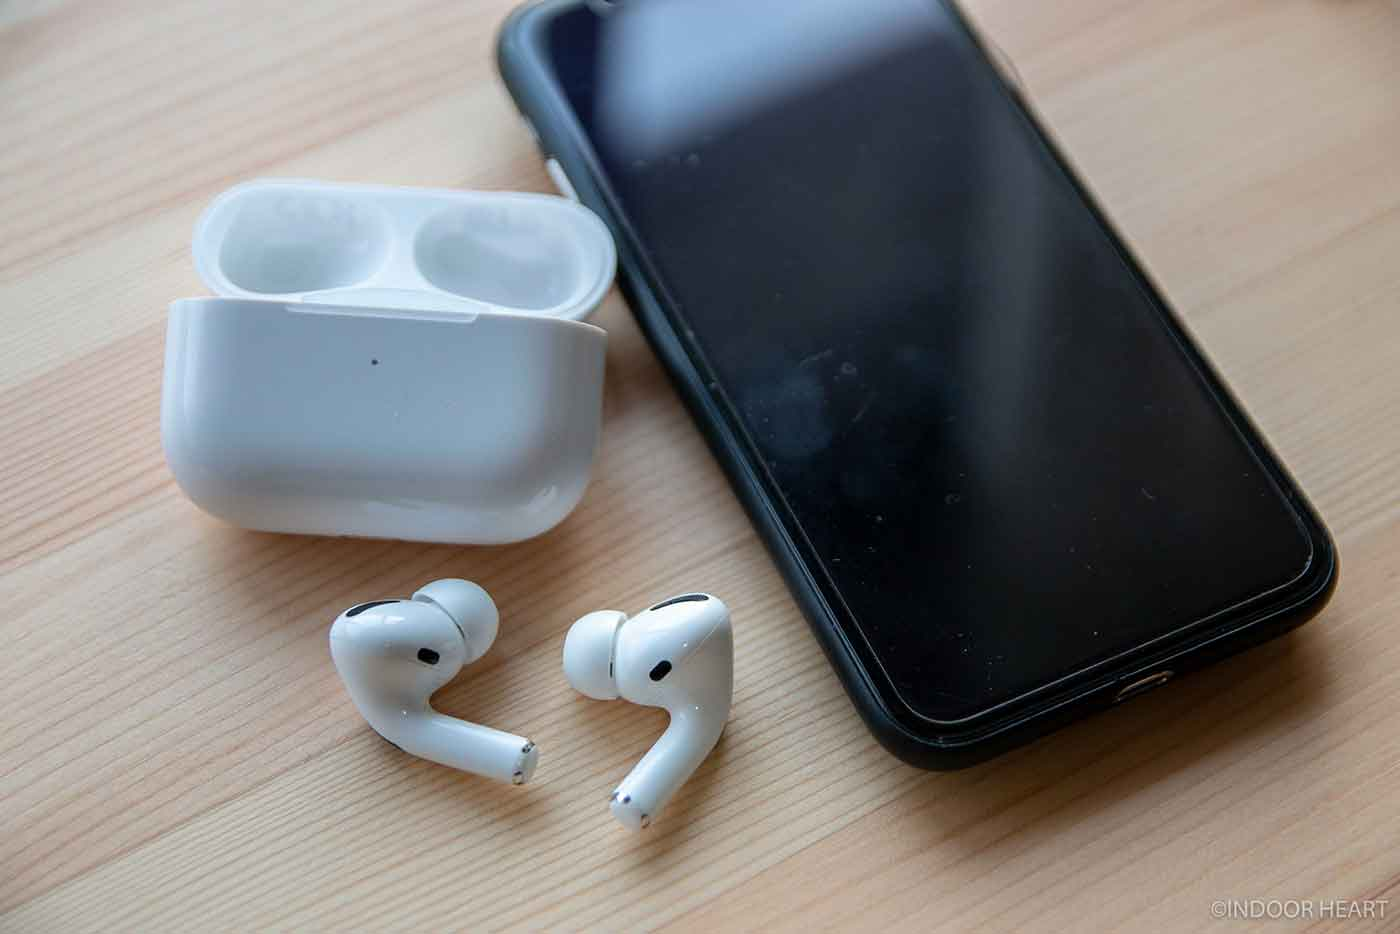 AirPods proとiPhone